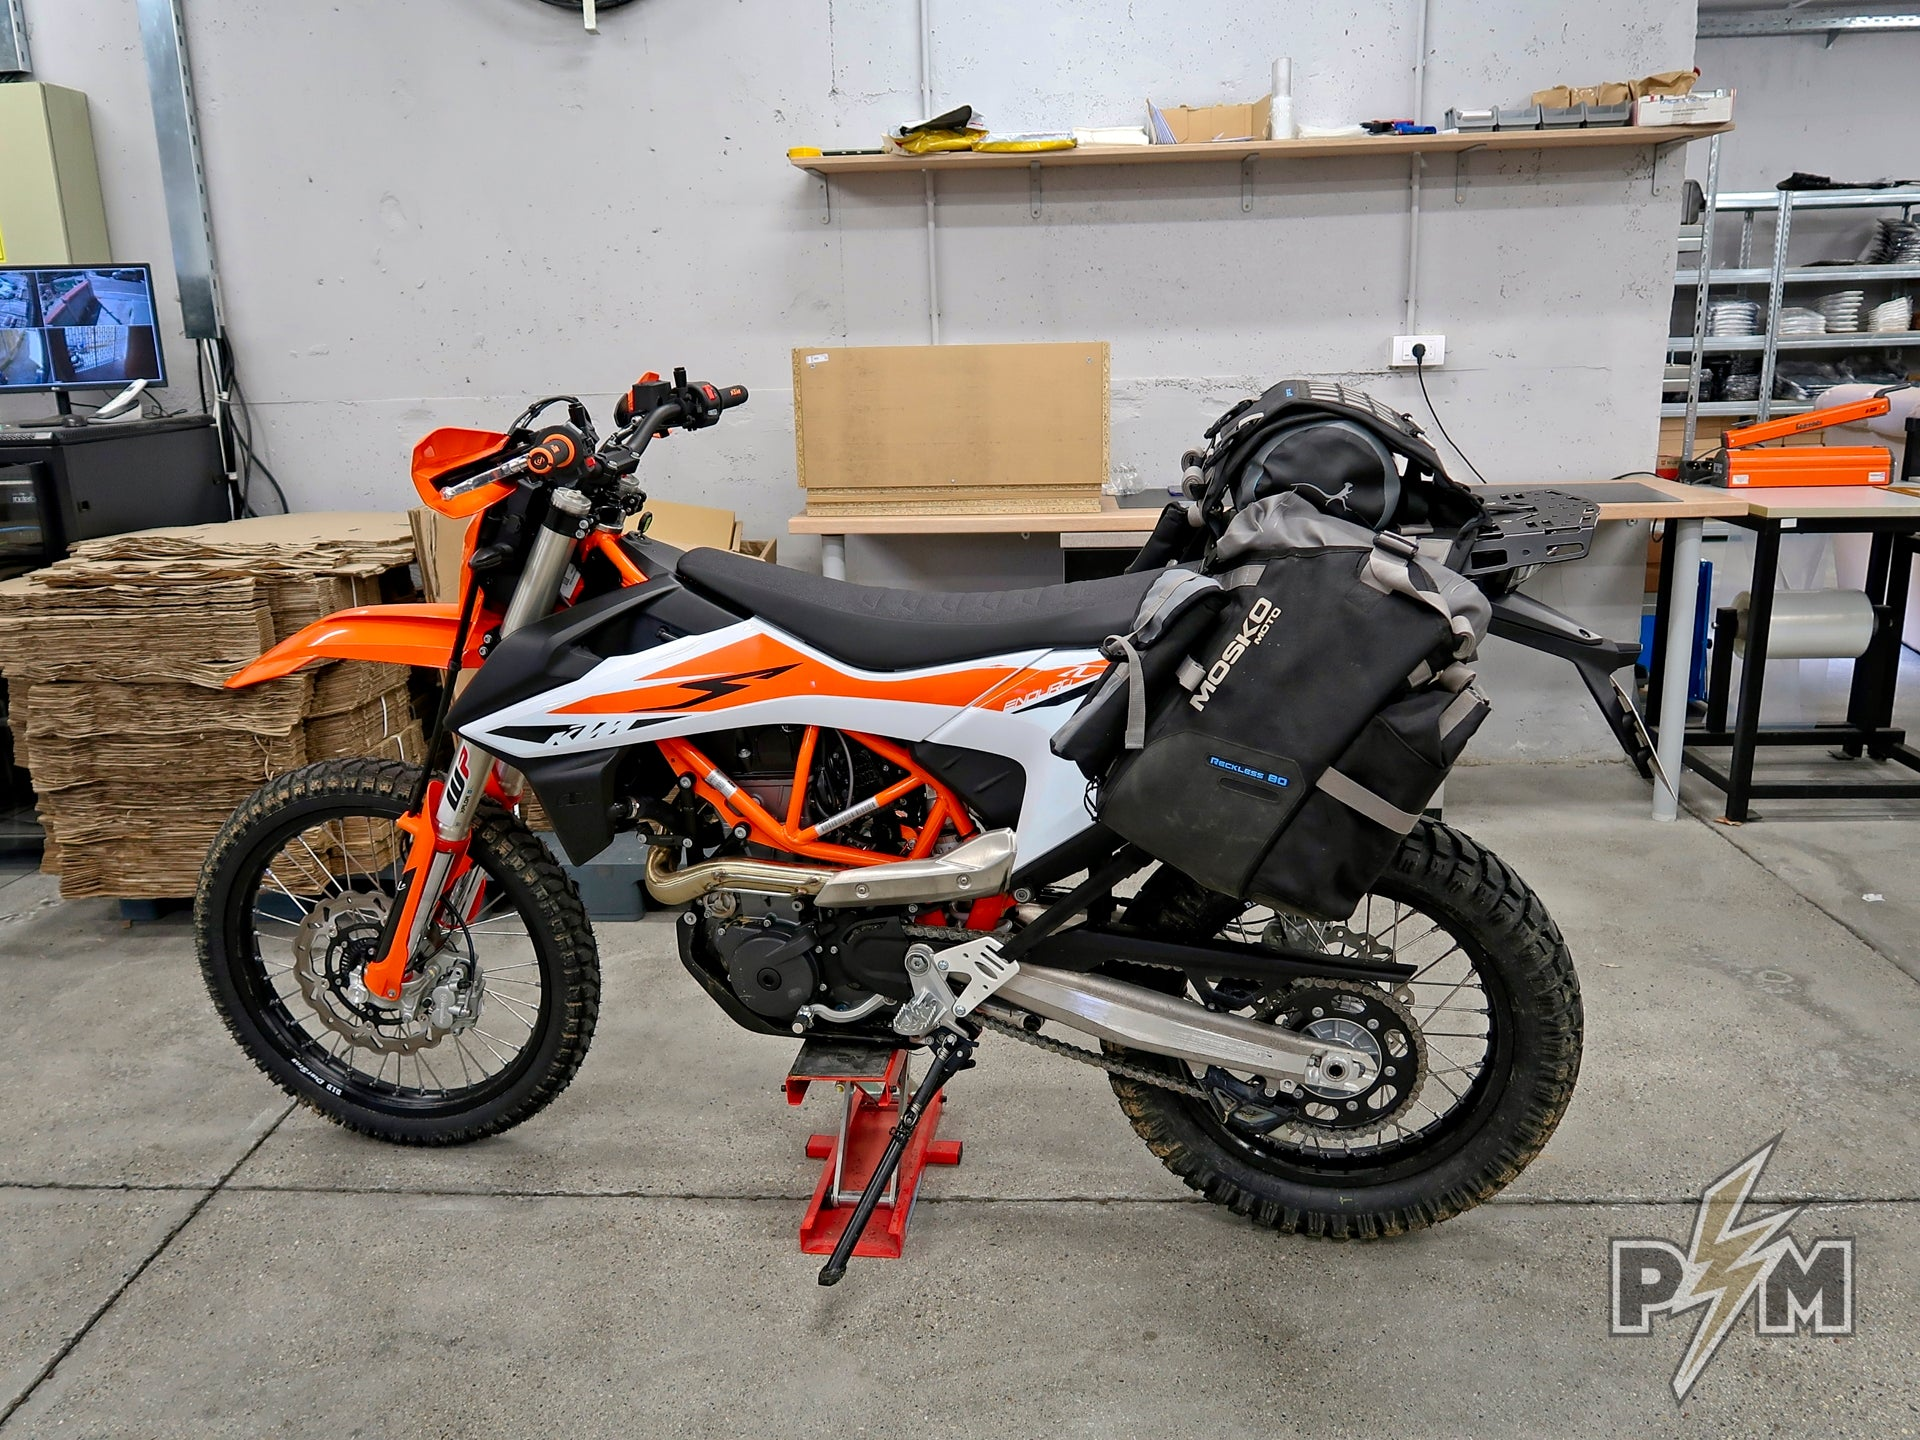 Mosko moto Reckless 80 and Extension plate for 2019 KTM 690 Enduro